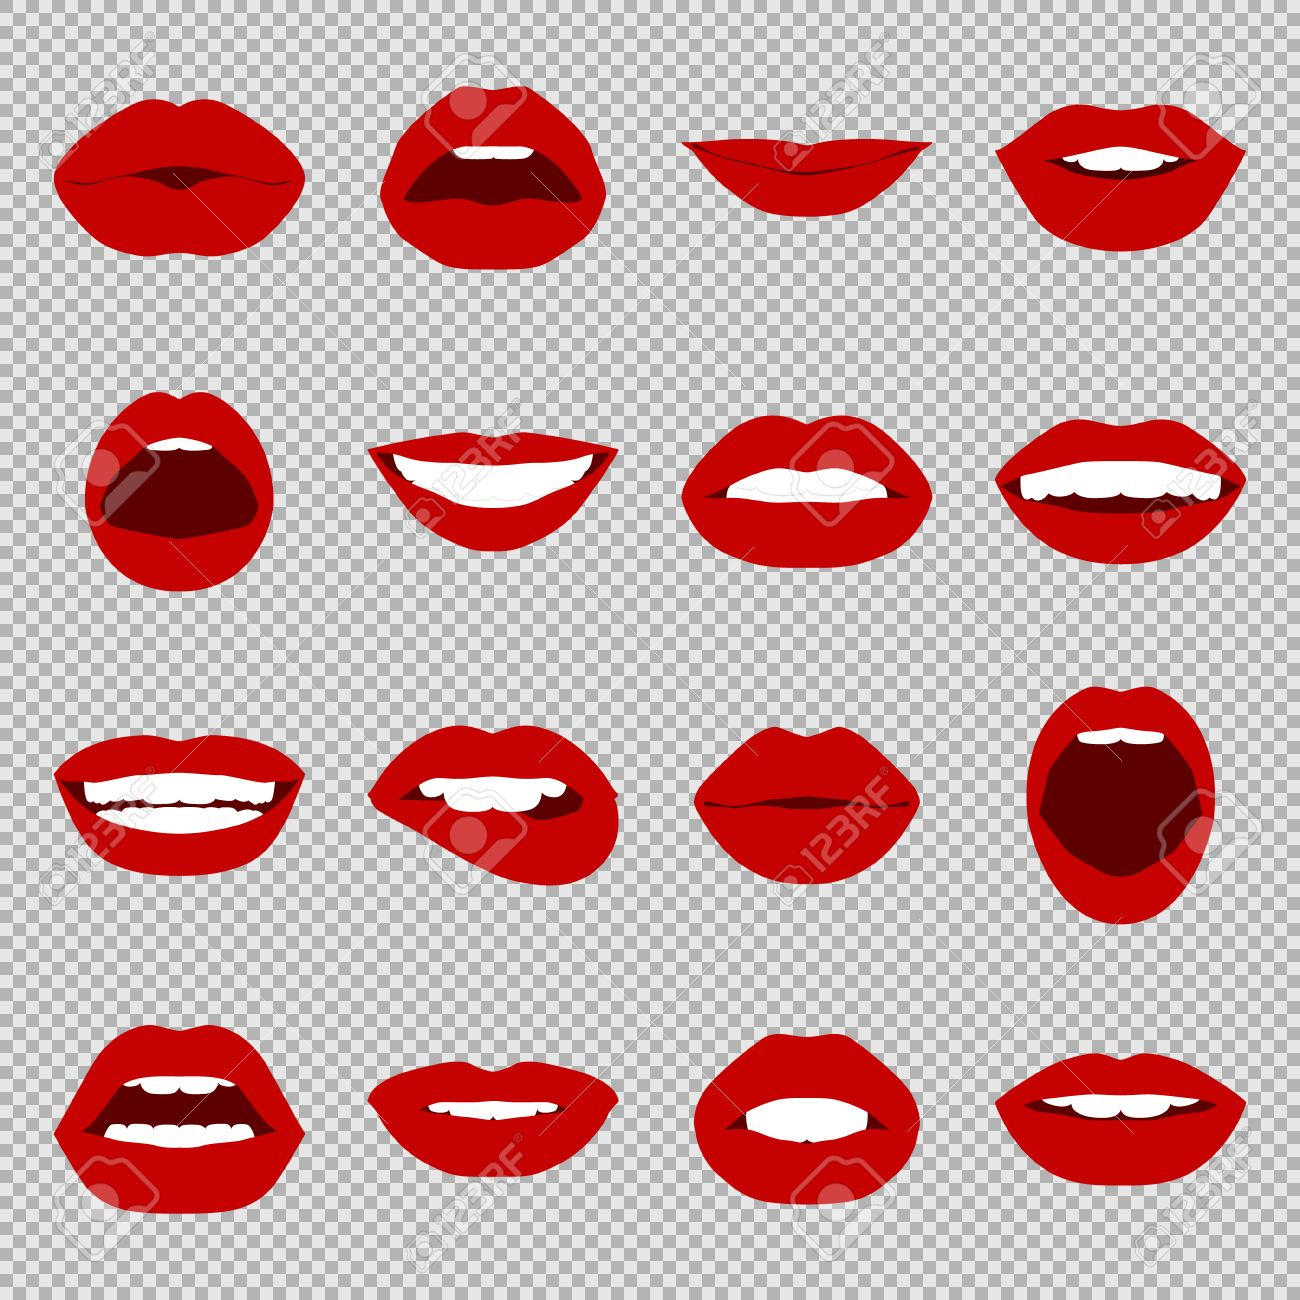 Lips set. Womans mouth close up with expressing different emotions. Vector EPS8 illustration. - 54103990